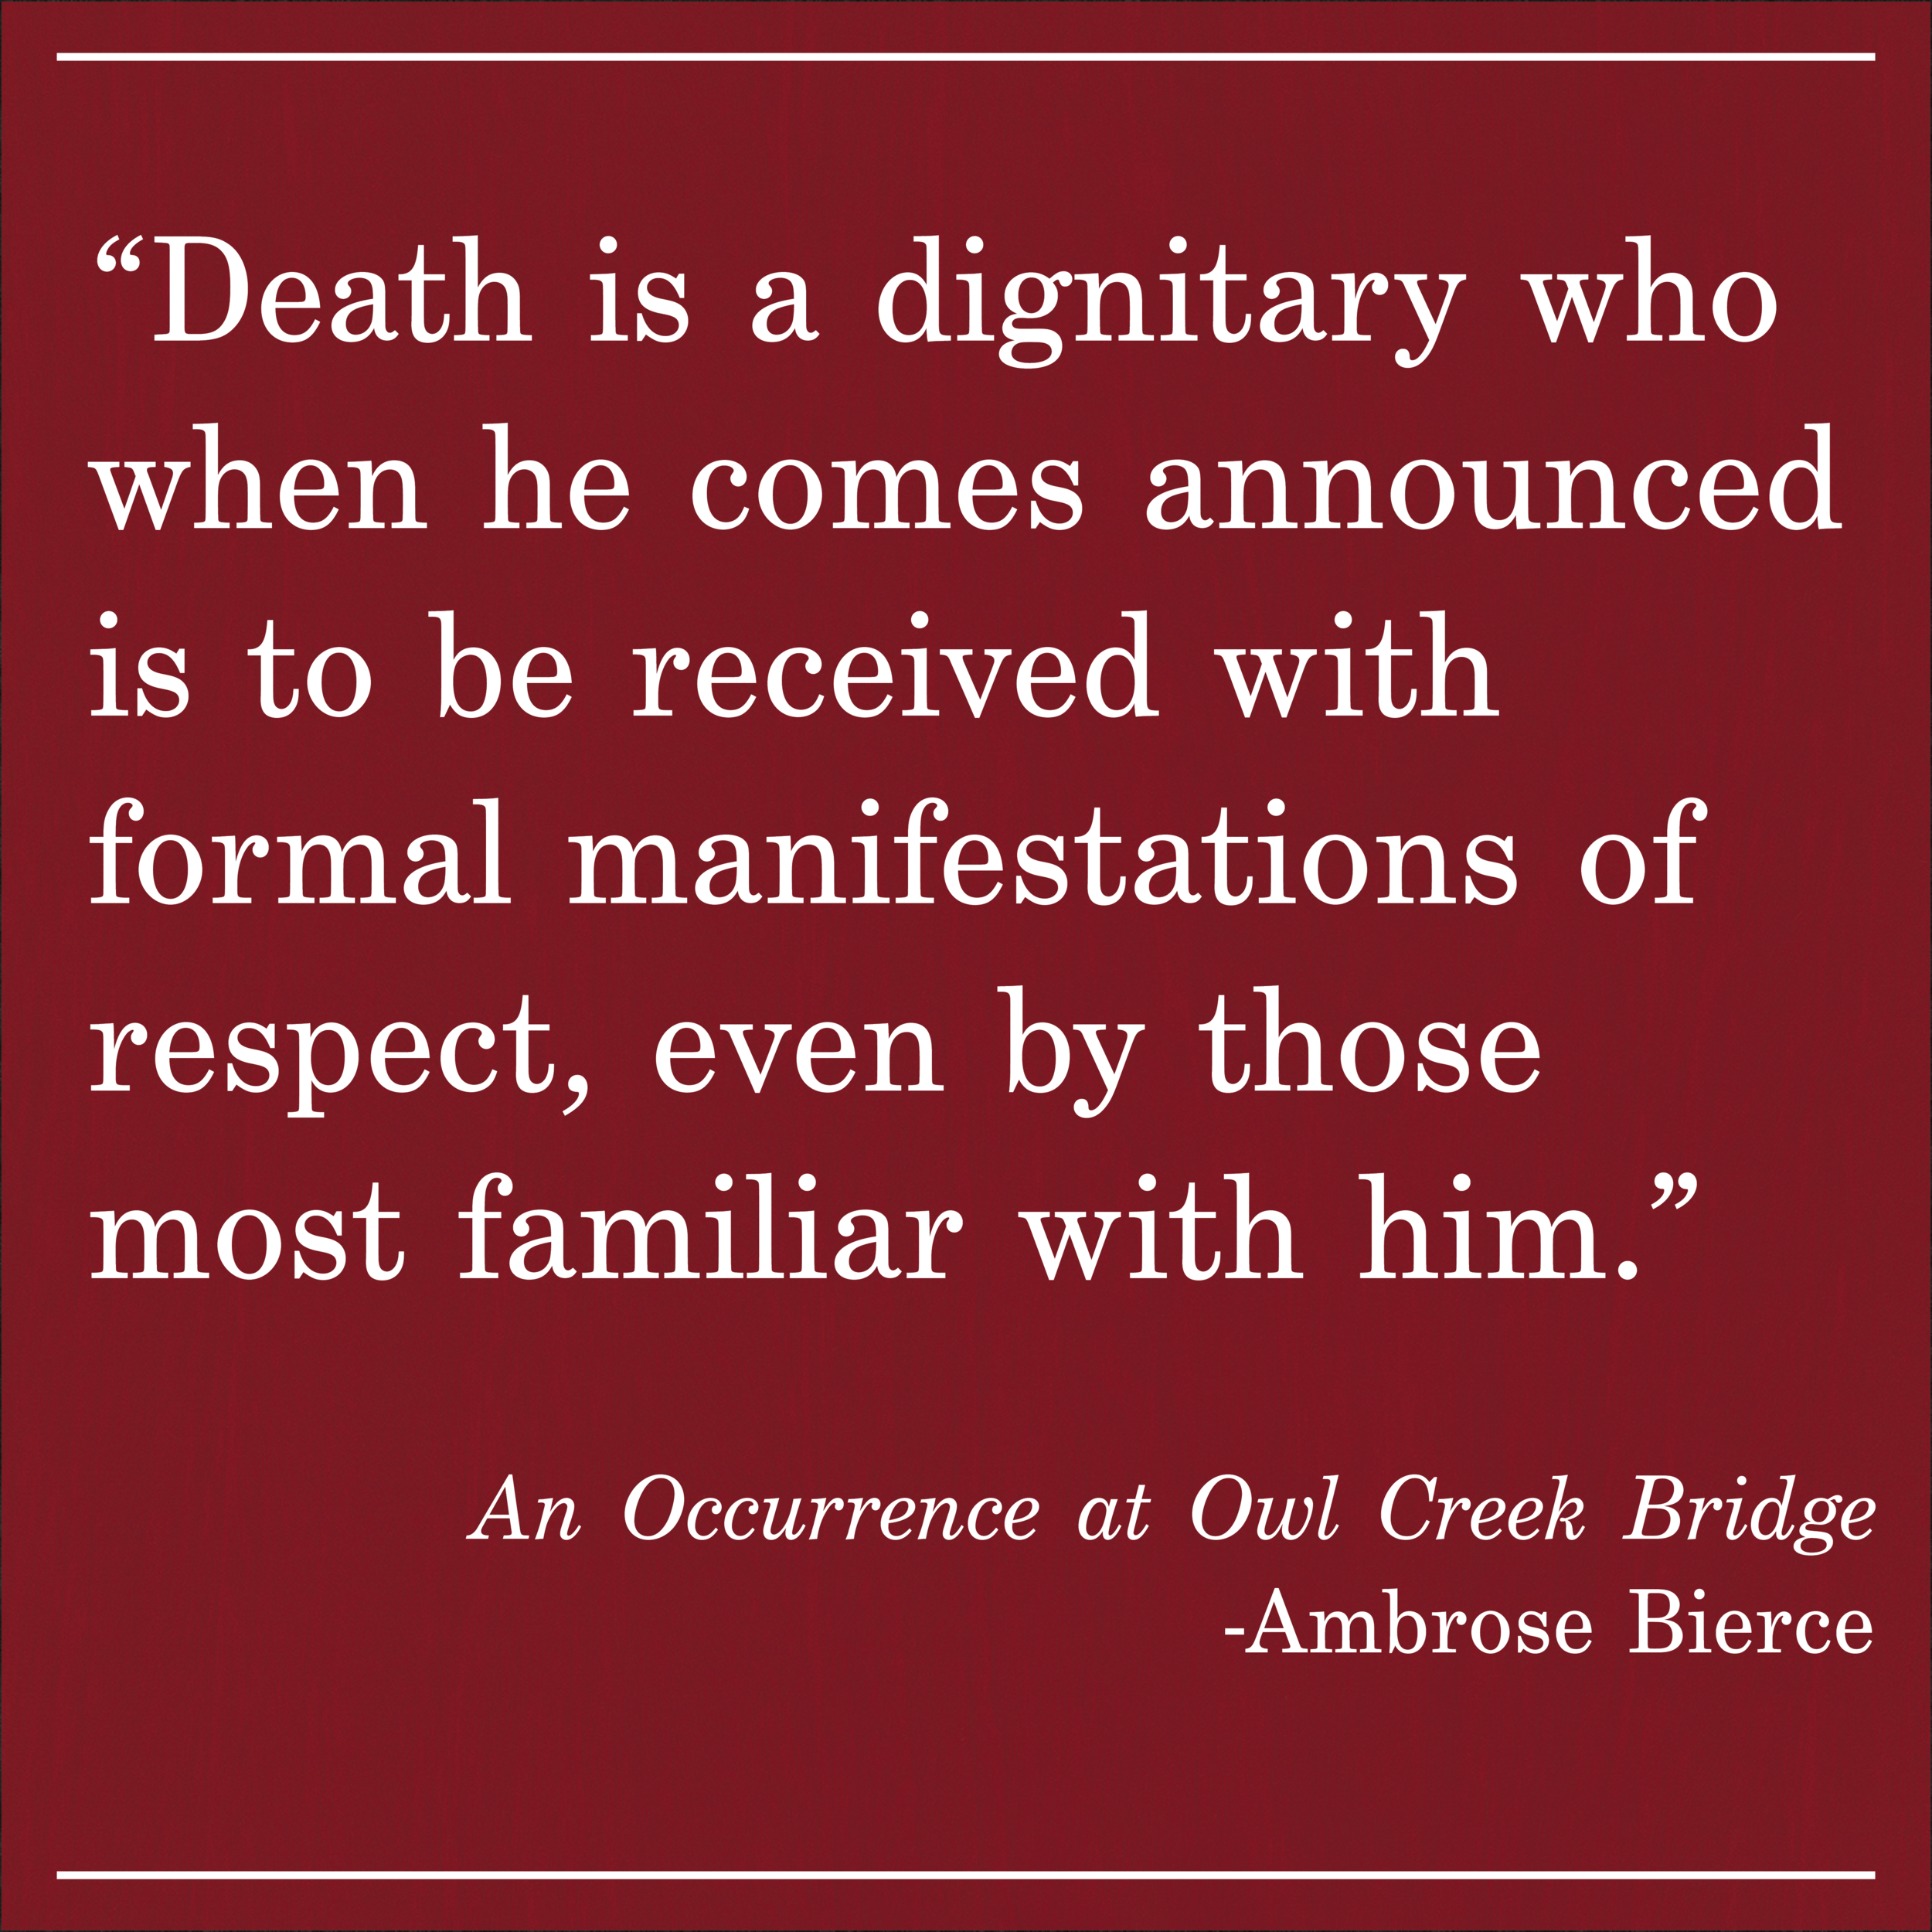 Daily Quote The Occurrence at Owl Creek Bridge by Ambrose Bierce